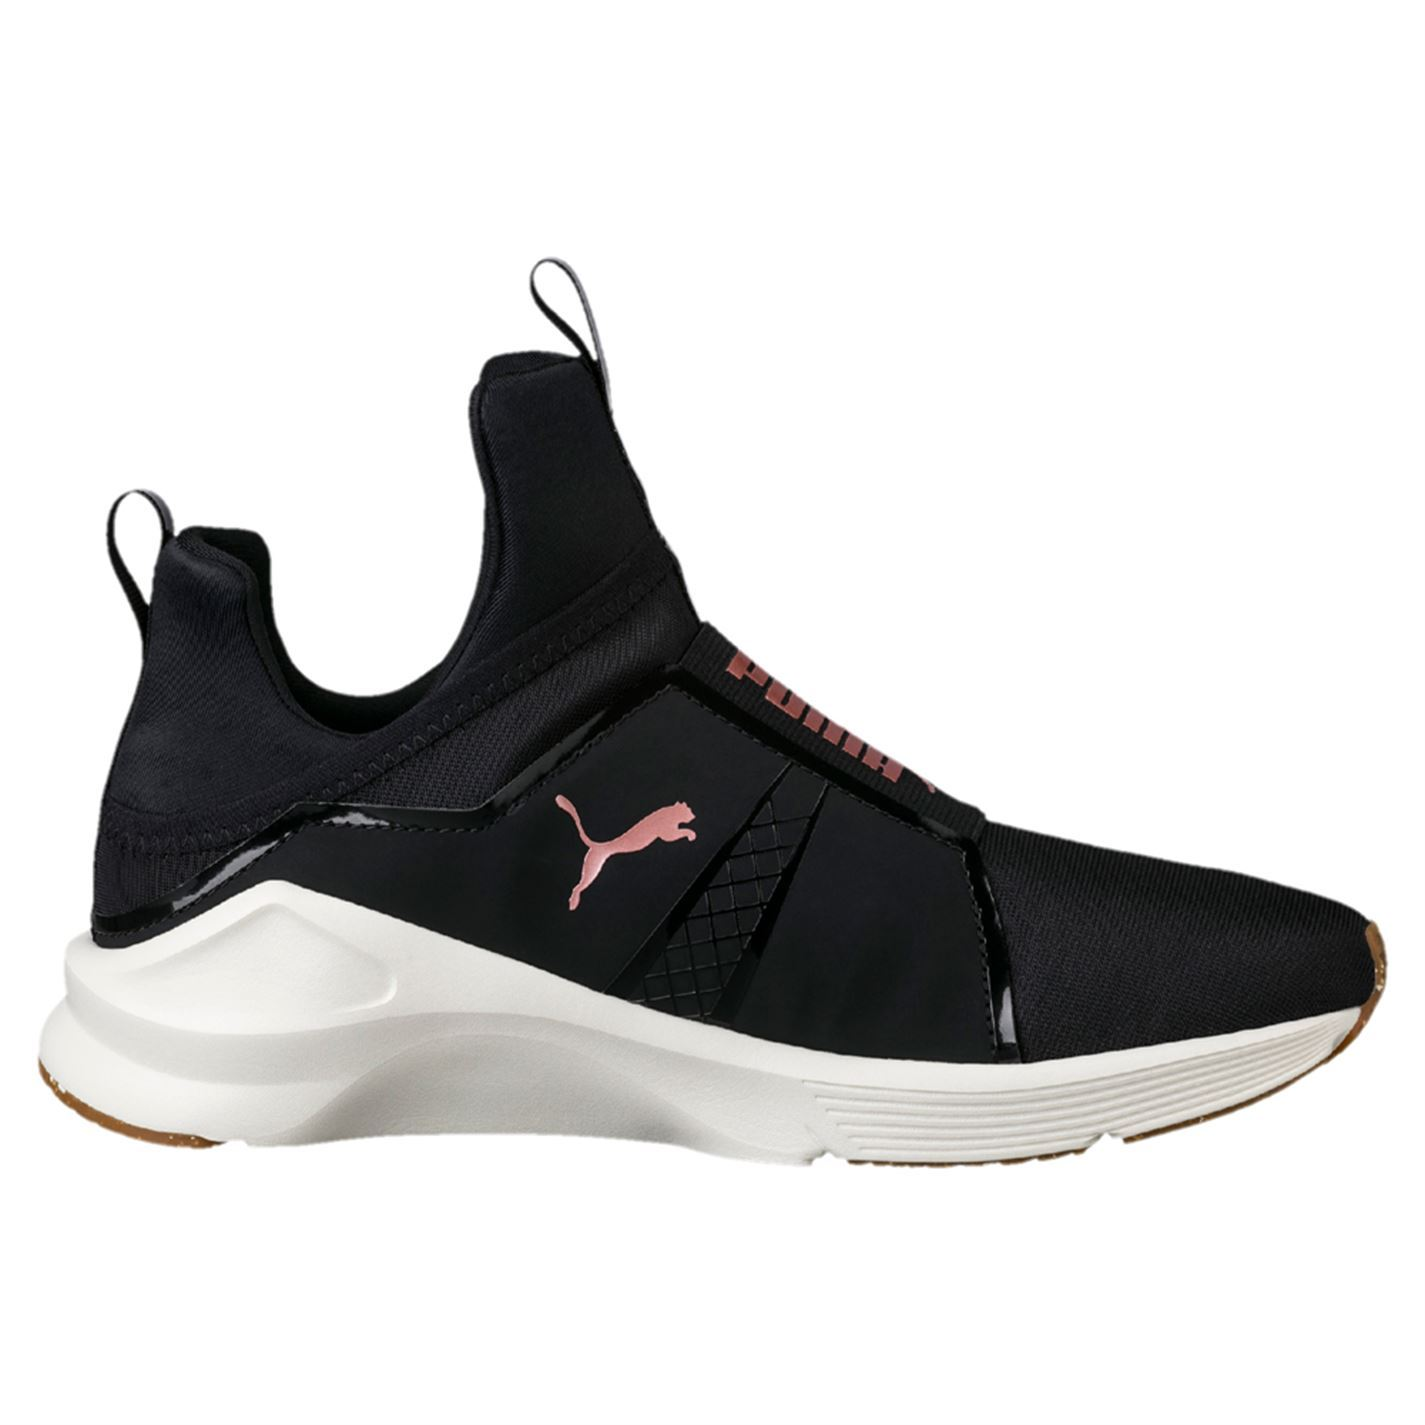 36218d915cfcfd ... Puma Fierce Velvet Rope Fitness Training Shoes Womens Black Trainers  Sneakers ...